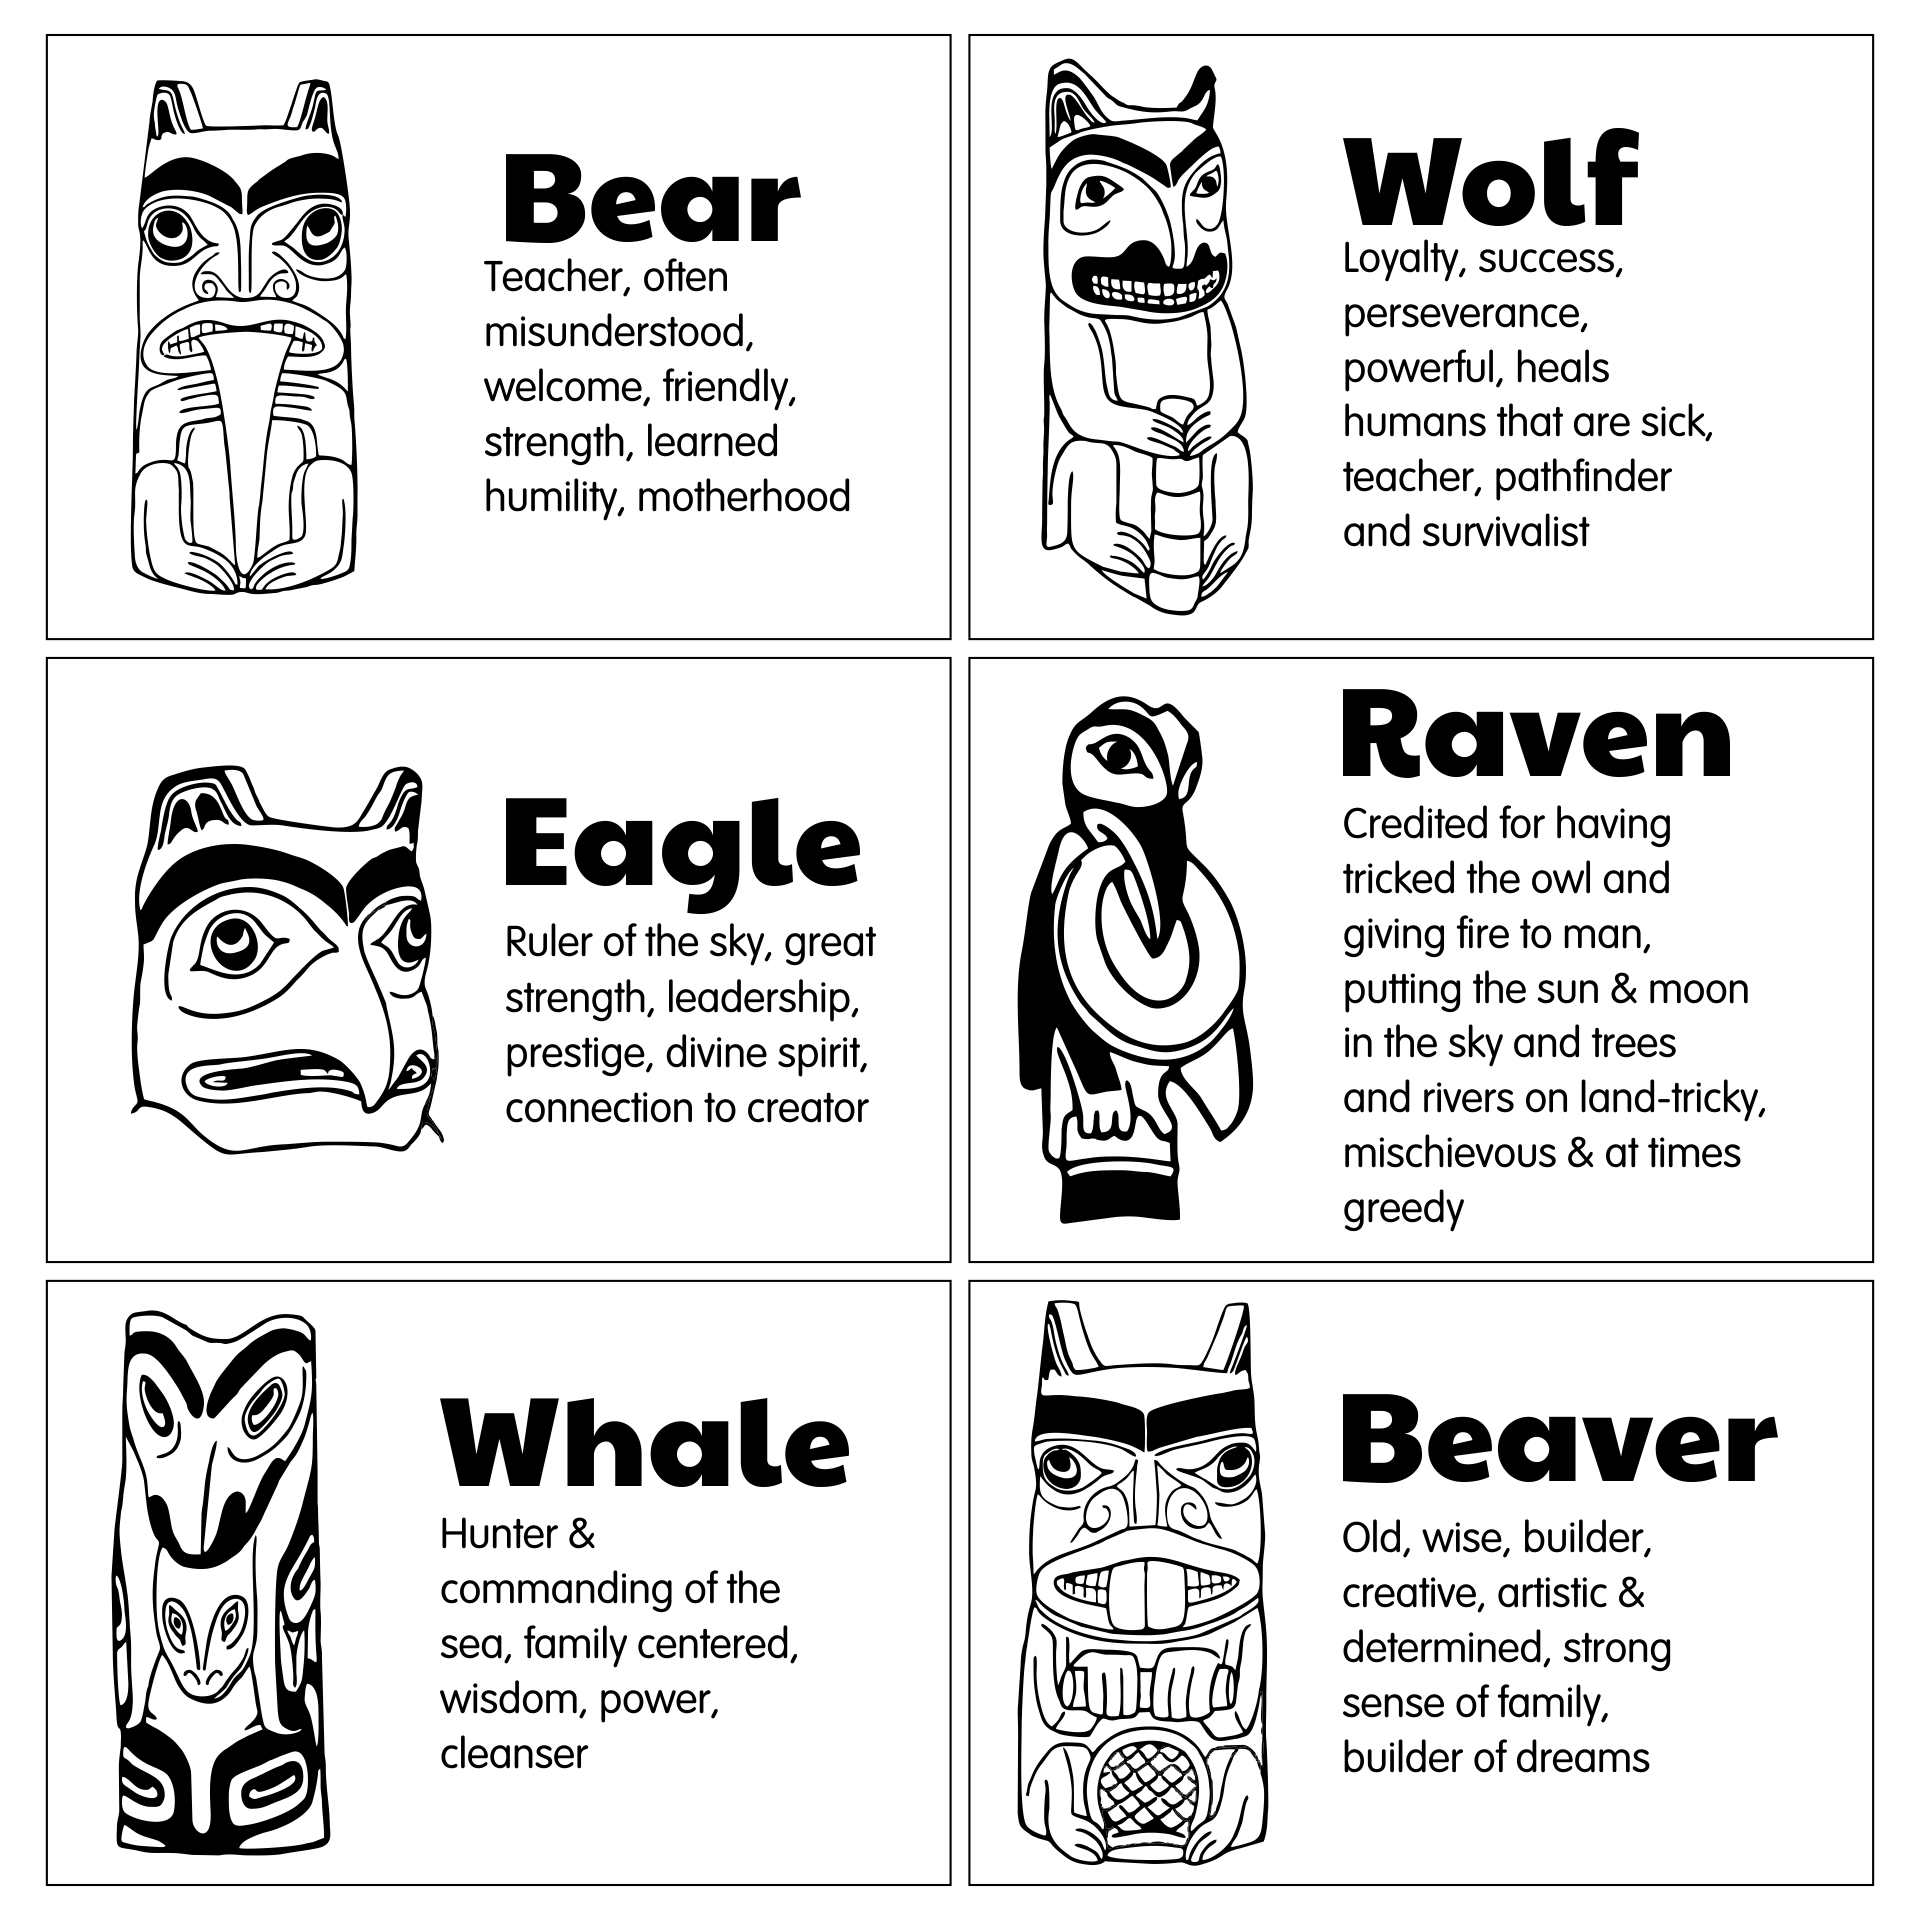 totem pole animals symbols meanings png 1275x1650 coloring animal totem symbols - Totem Pole Animals Coloring Pages